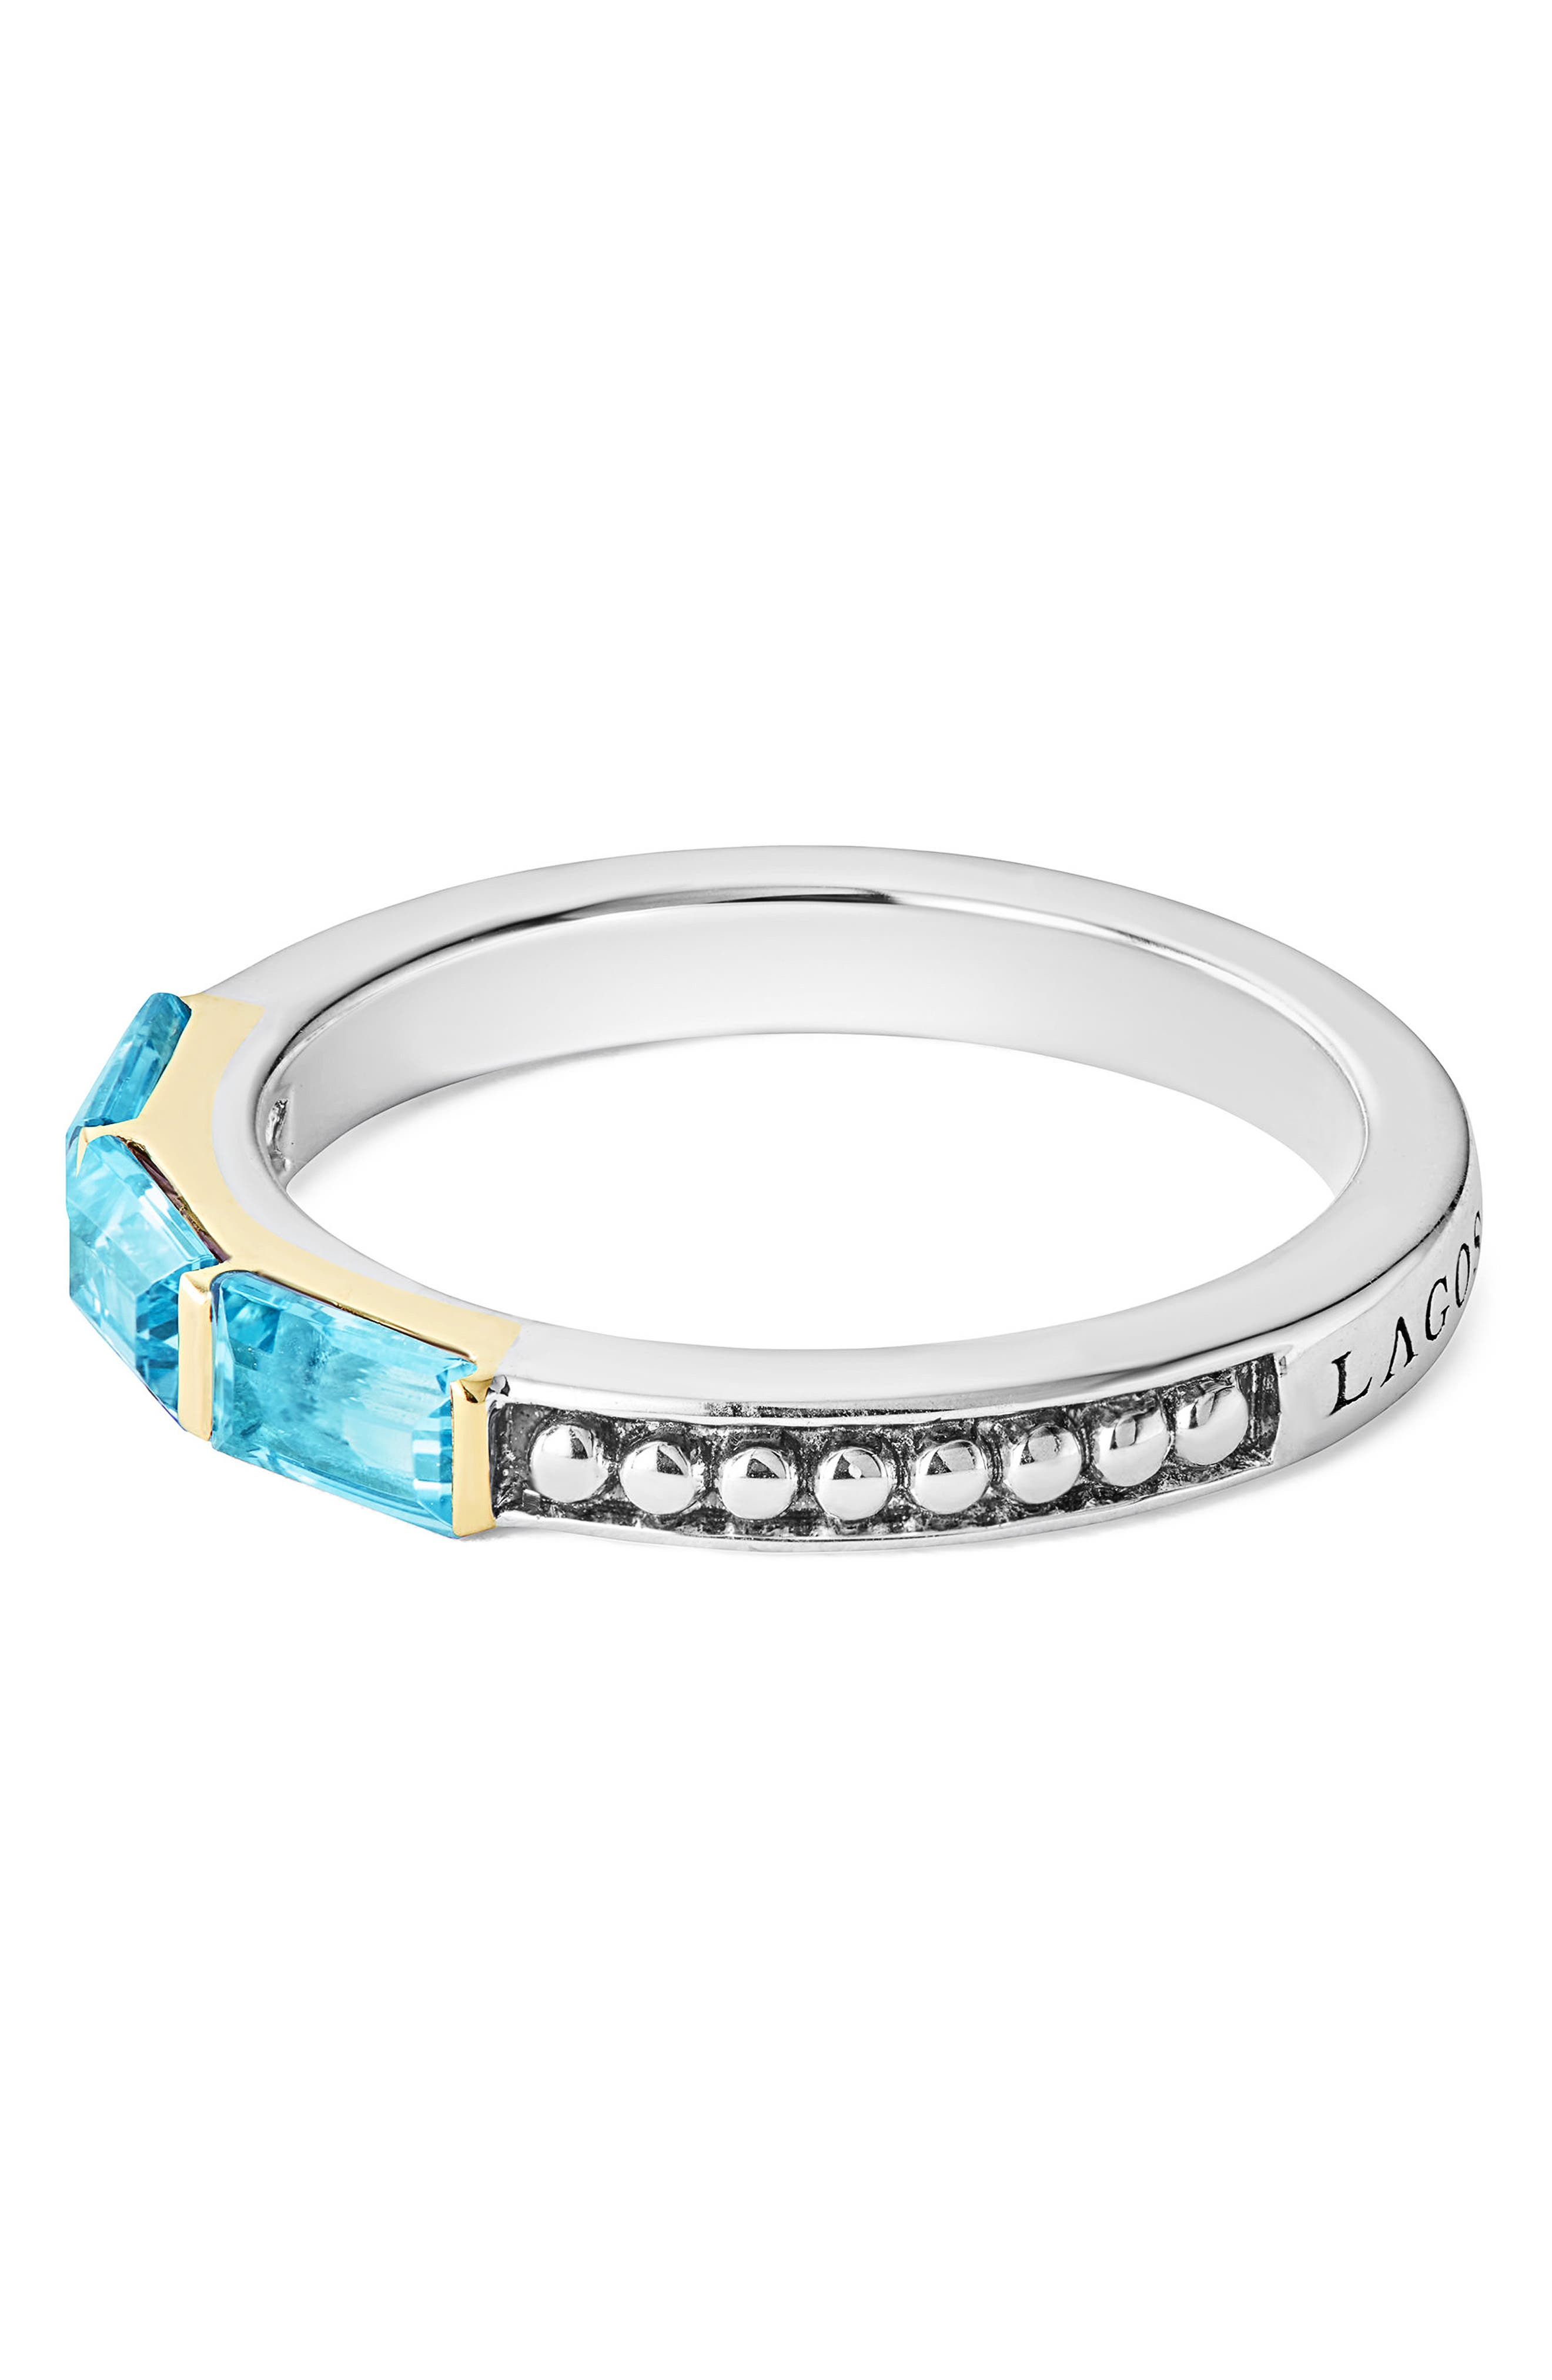 Gemstone Baguette Stackable Ring,                             Alternate thumbnail 2, color,                             Silver/ 18K Gold/ Blue Topaz